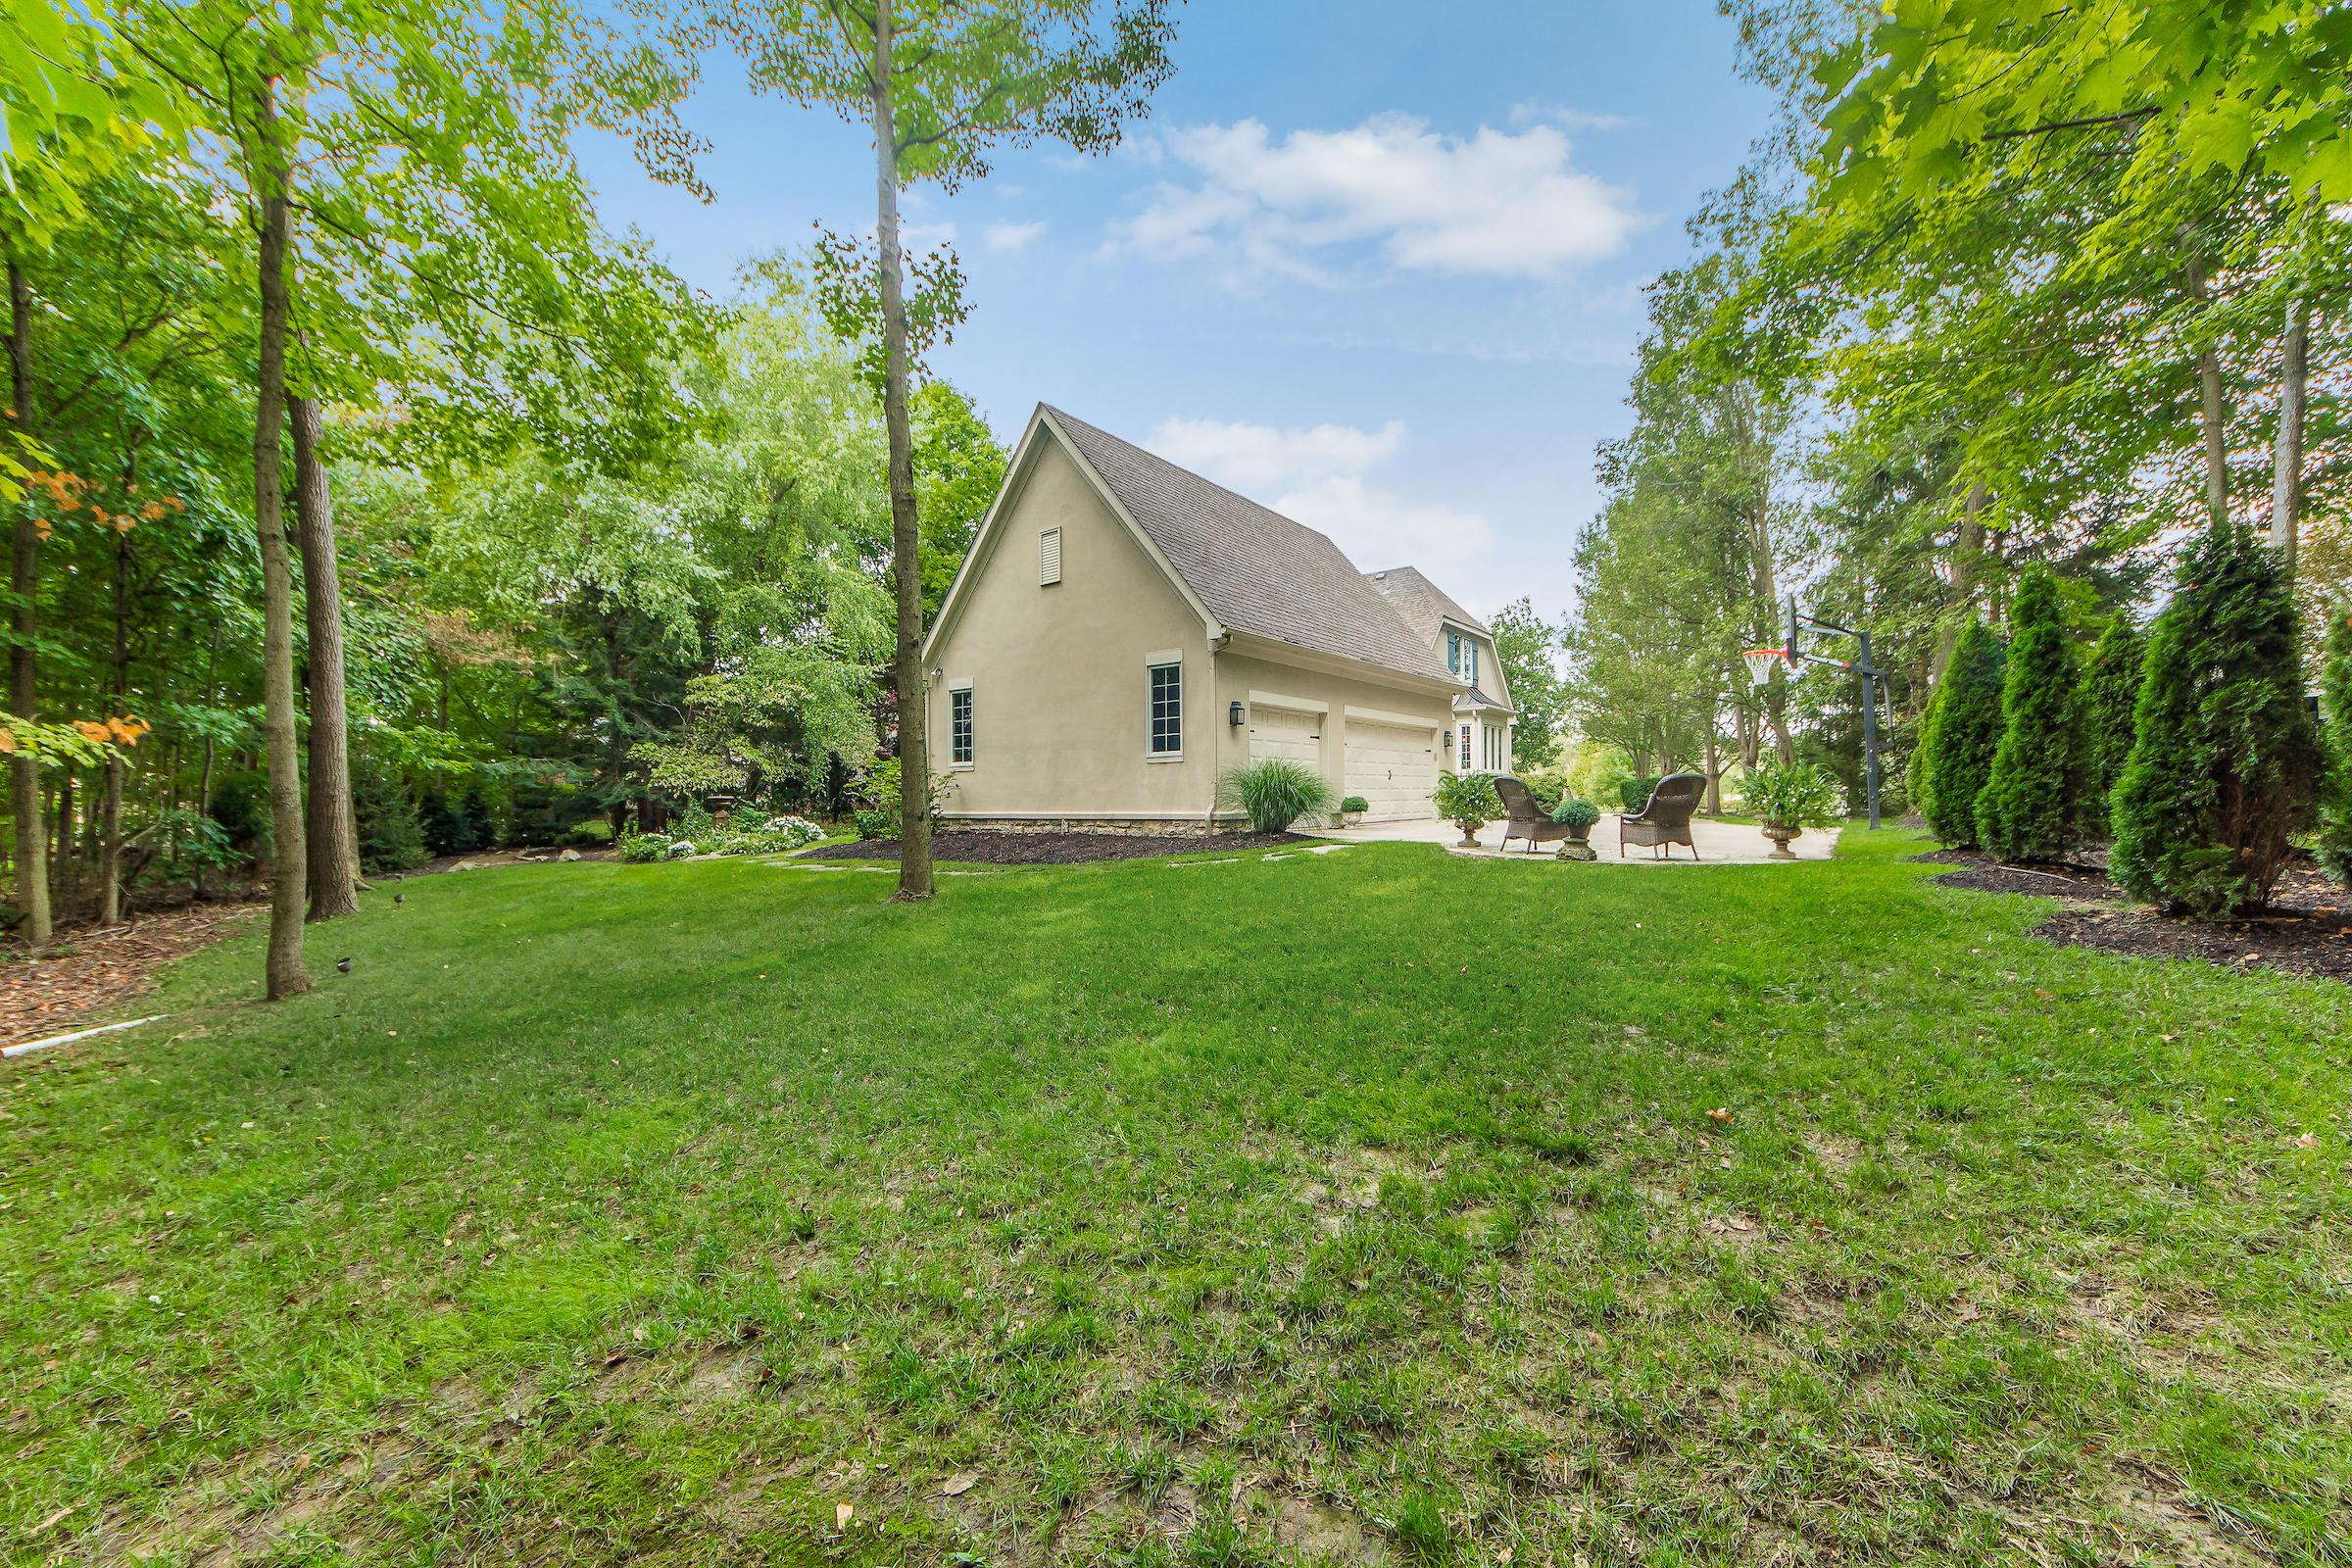 10744 Campden Lakes Boulevard, Dublin, Ohio 43016, 4 Bedrooms Bedrooms, ,4 BathroomsBathrooms,Residential,For Sale,Campden Lakes,220032239